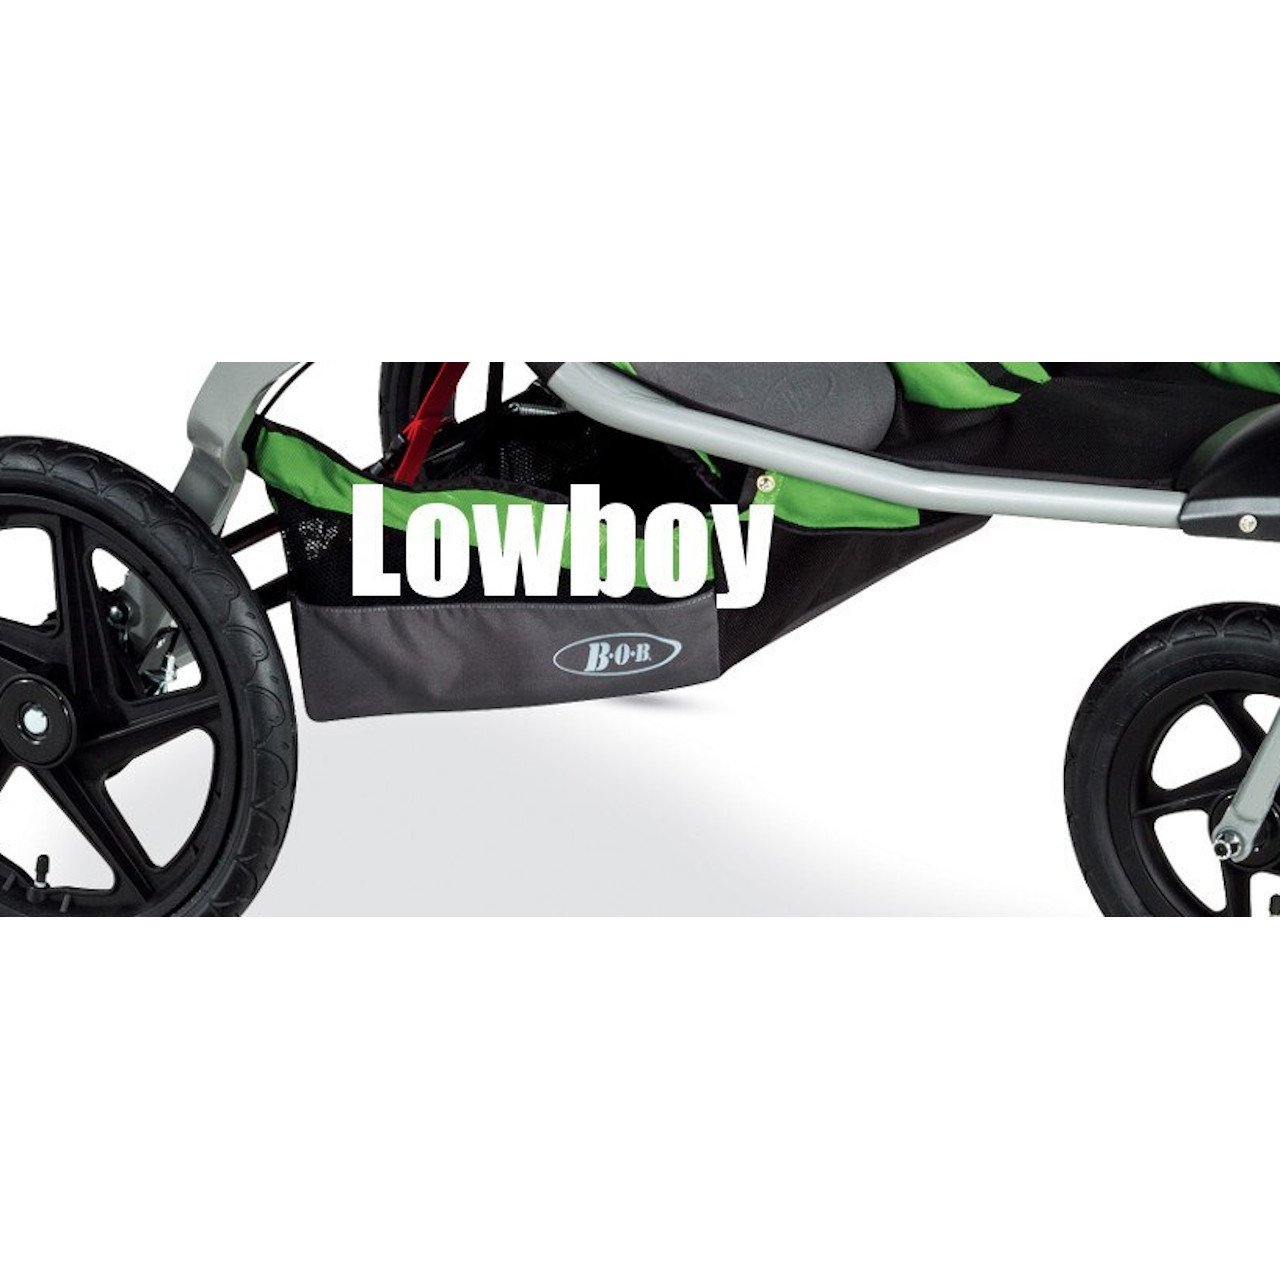 BOB Lowboy Pro/Duallie Wilderness 2014-2015